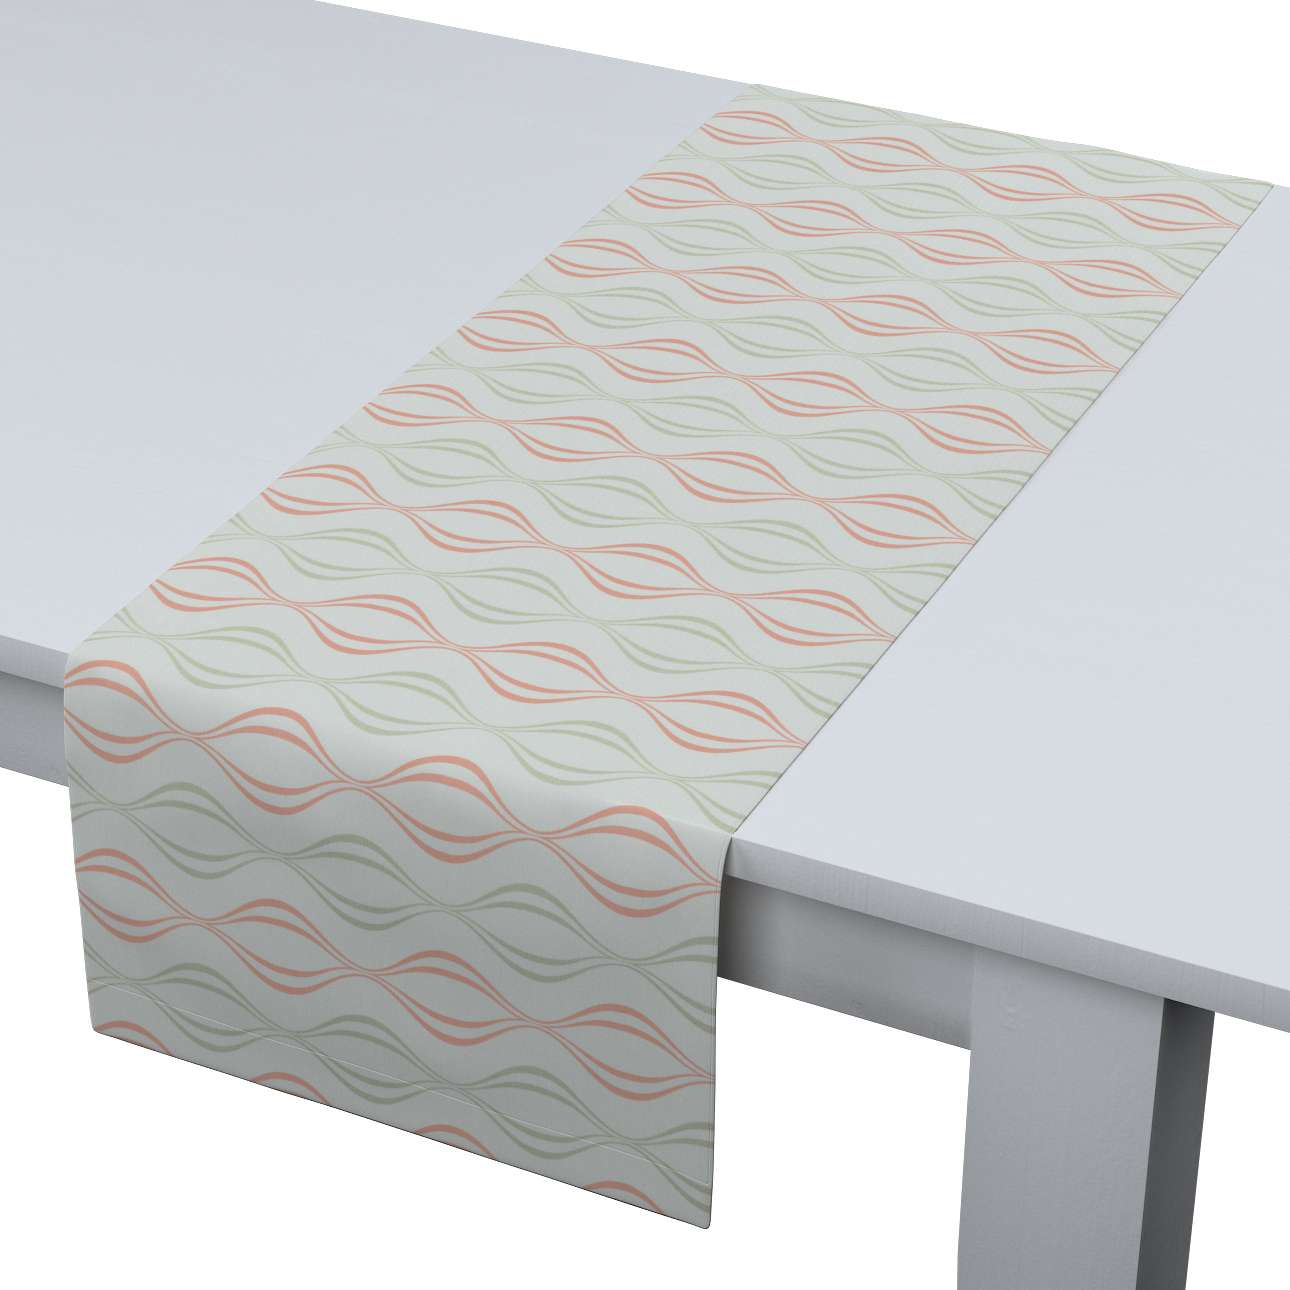 Table runner 40 x 130 cm (16 x 51 inch) in collection Geometric, fabric: 141-49